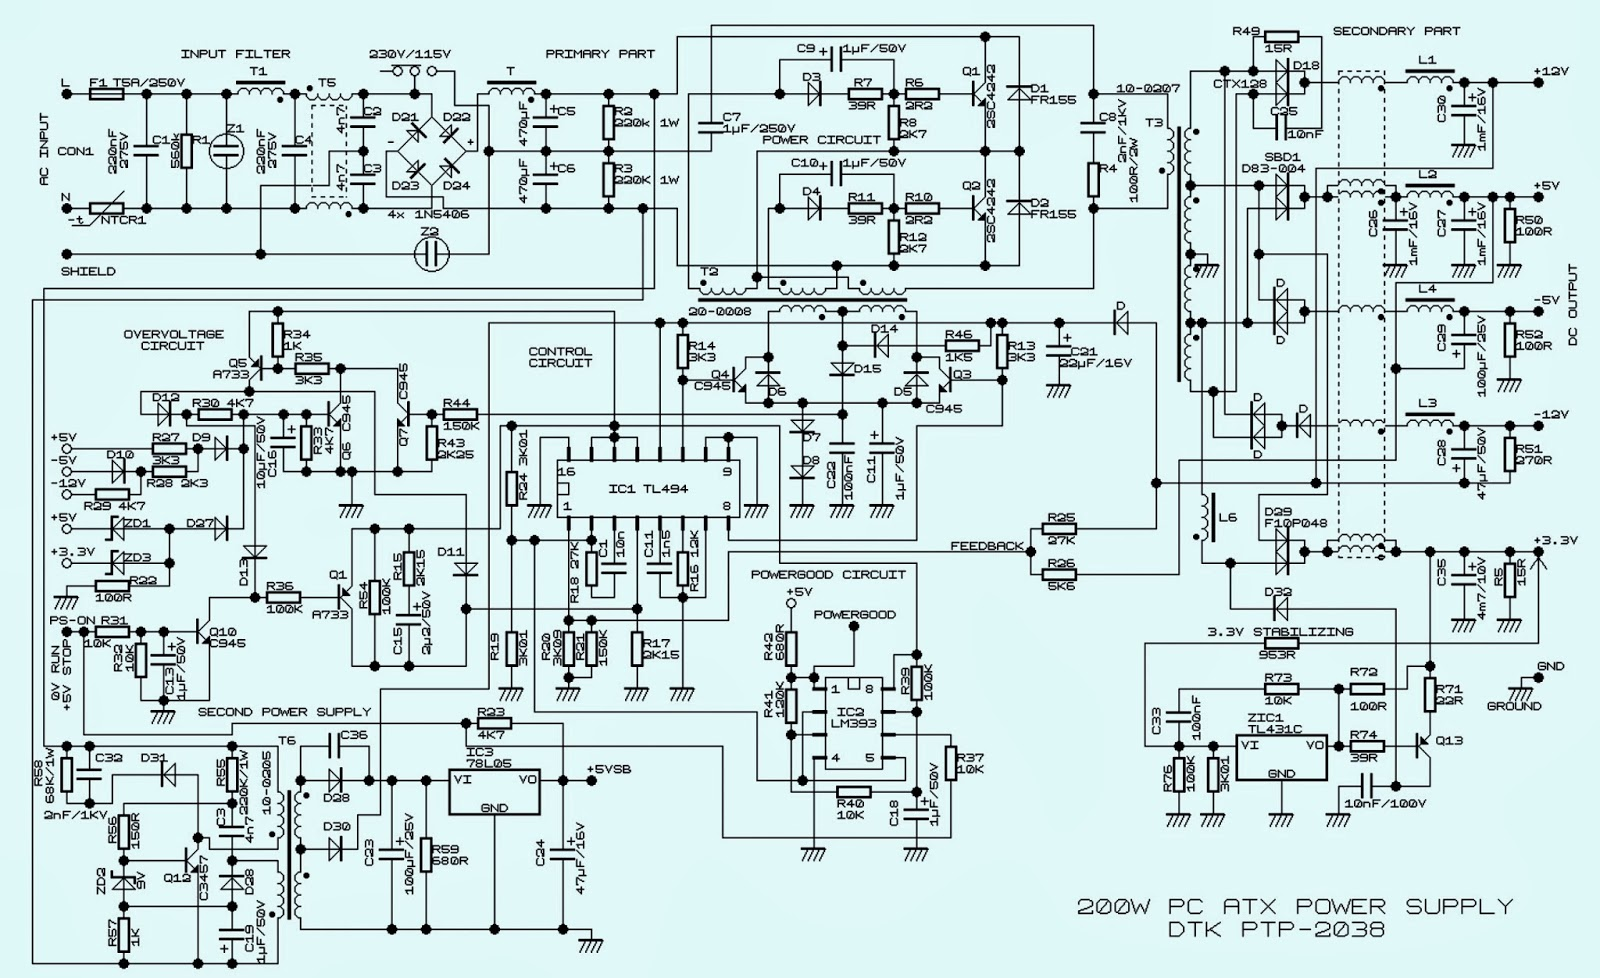 small resolution of computer logic diagram wiring diagrams wnicomputer logic diagram wiring diagram computer logic diagram